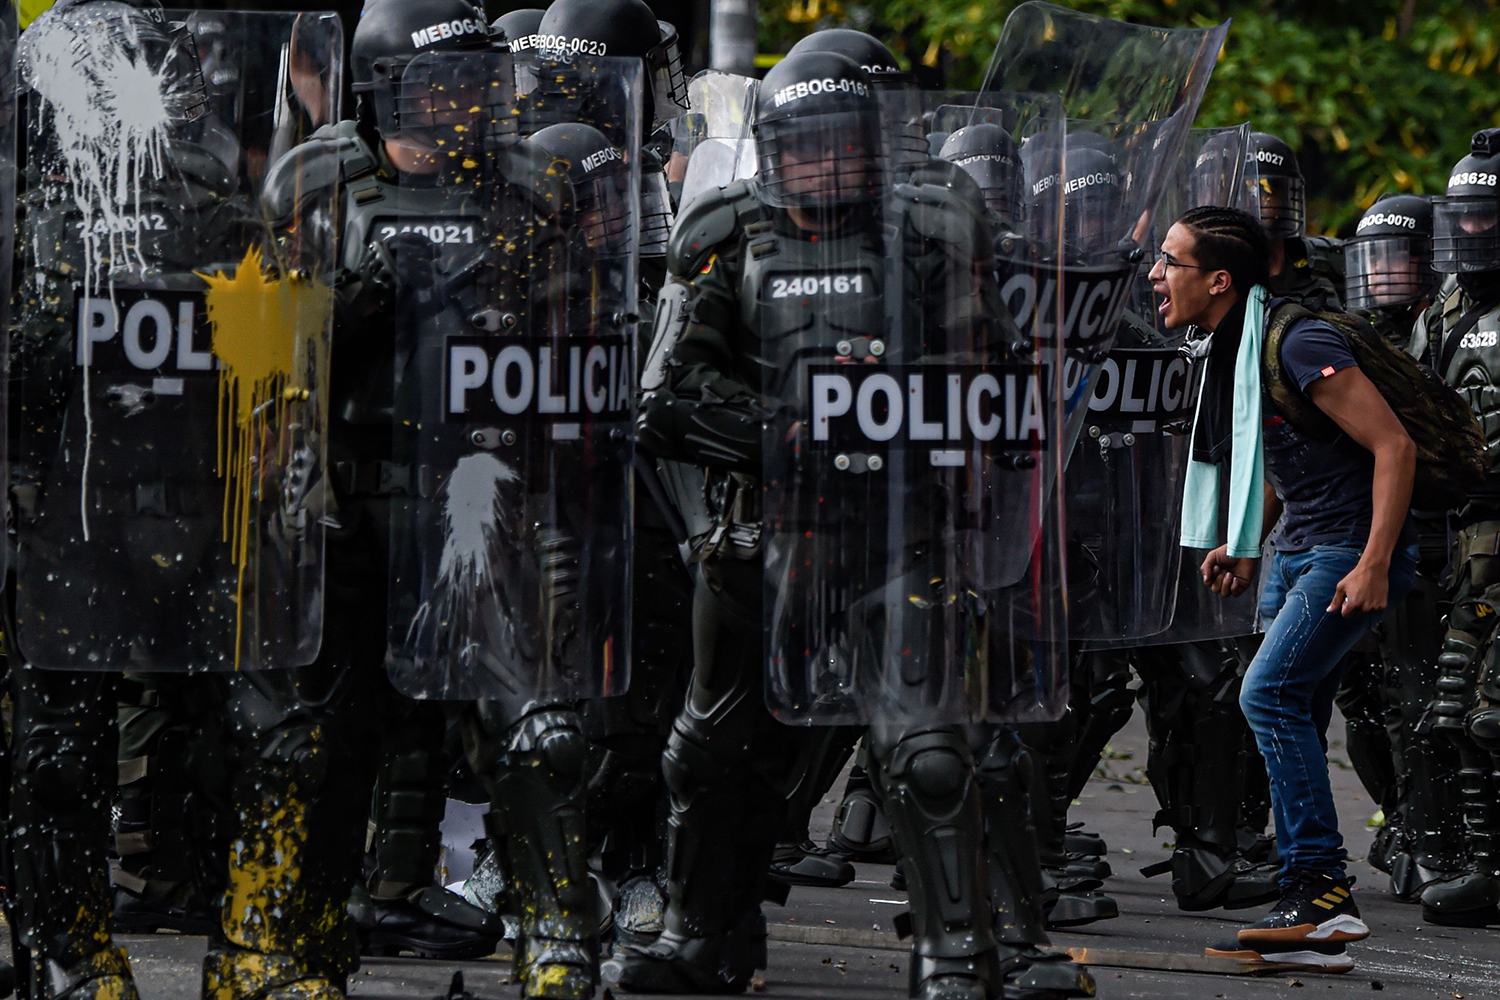 A demonstrator shouts at riot police during a nationwide strike called by students, unions, and indigenous groups to protest the government of Colombia's President Ivan Duque, in Bogota, on Nov. 21. JUAN BARRETO/AFP via Getty Images